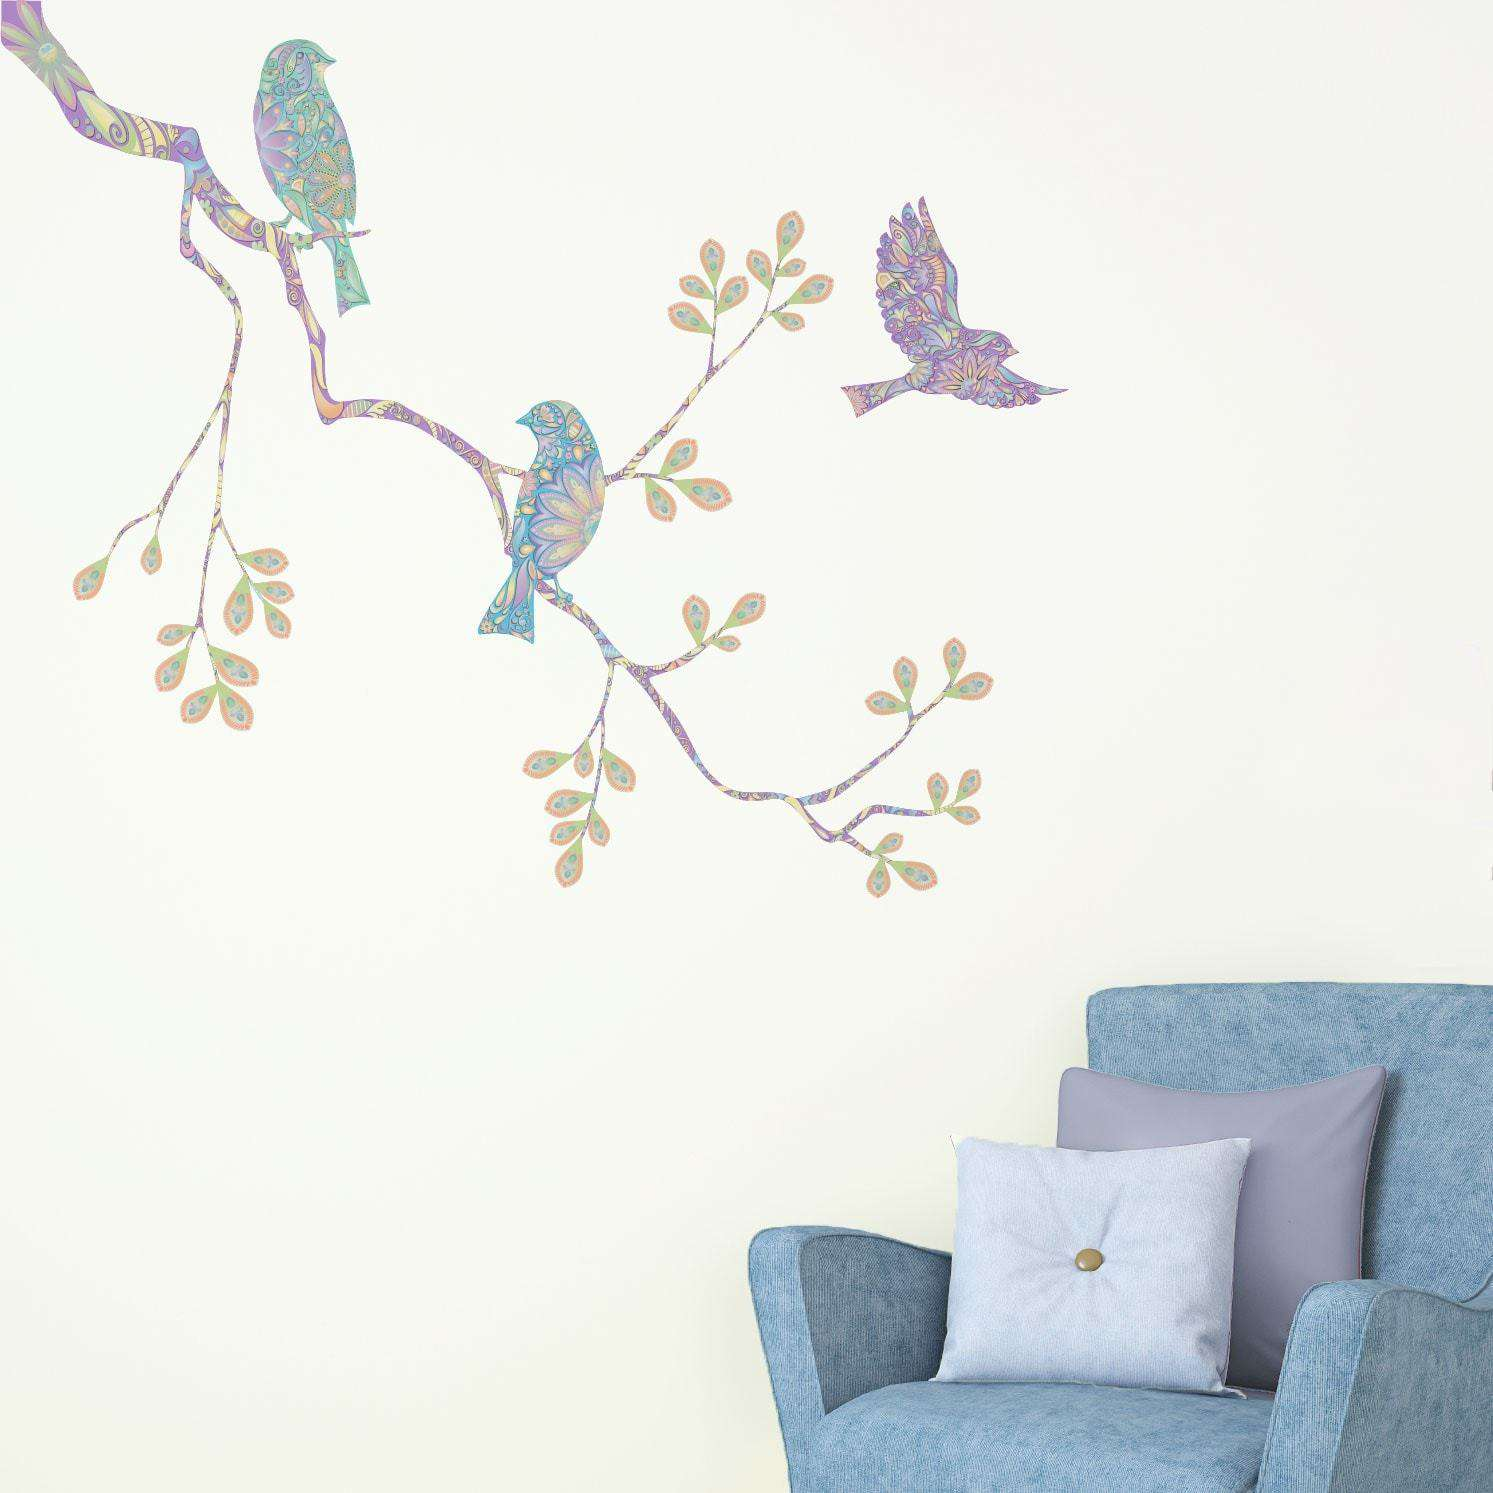 Bird and owl wall stencils stickers and coordinating home decor for c pastel birds and tree branch wall decal set amipublicfo Images